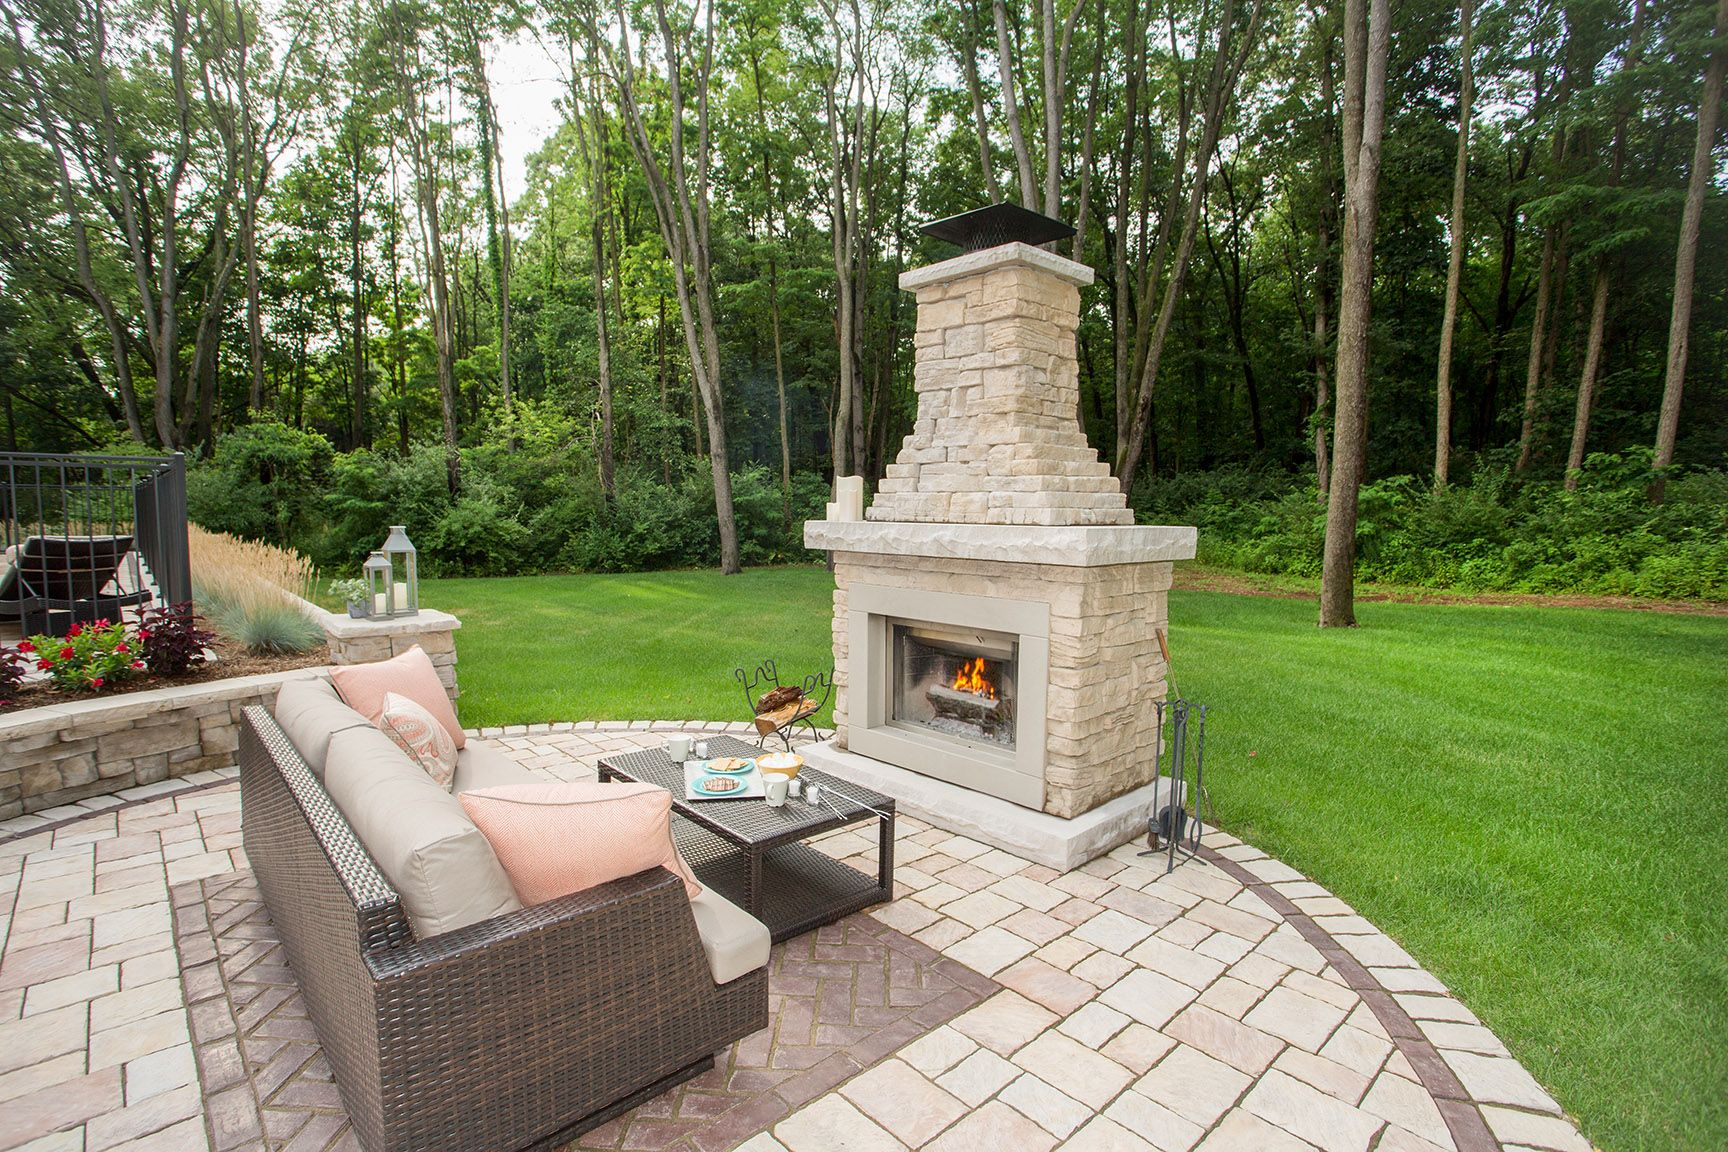 Backyard fireplace provides an anchor for outdoor living